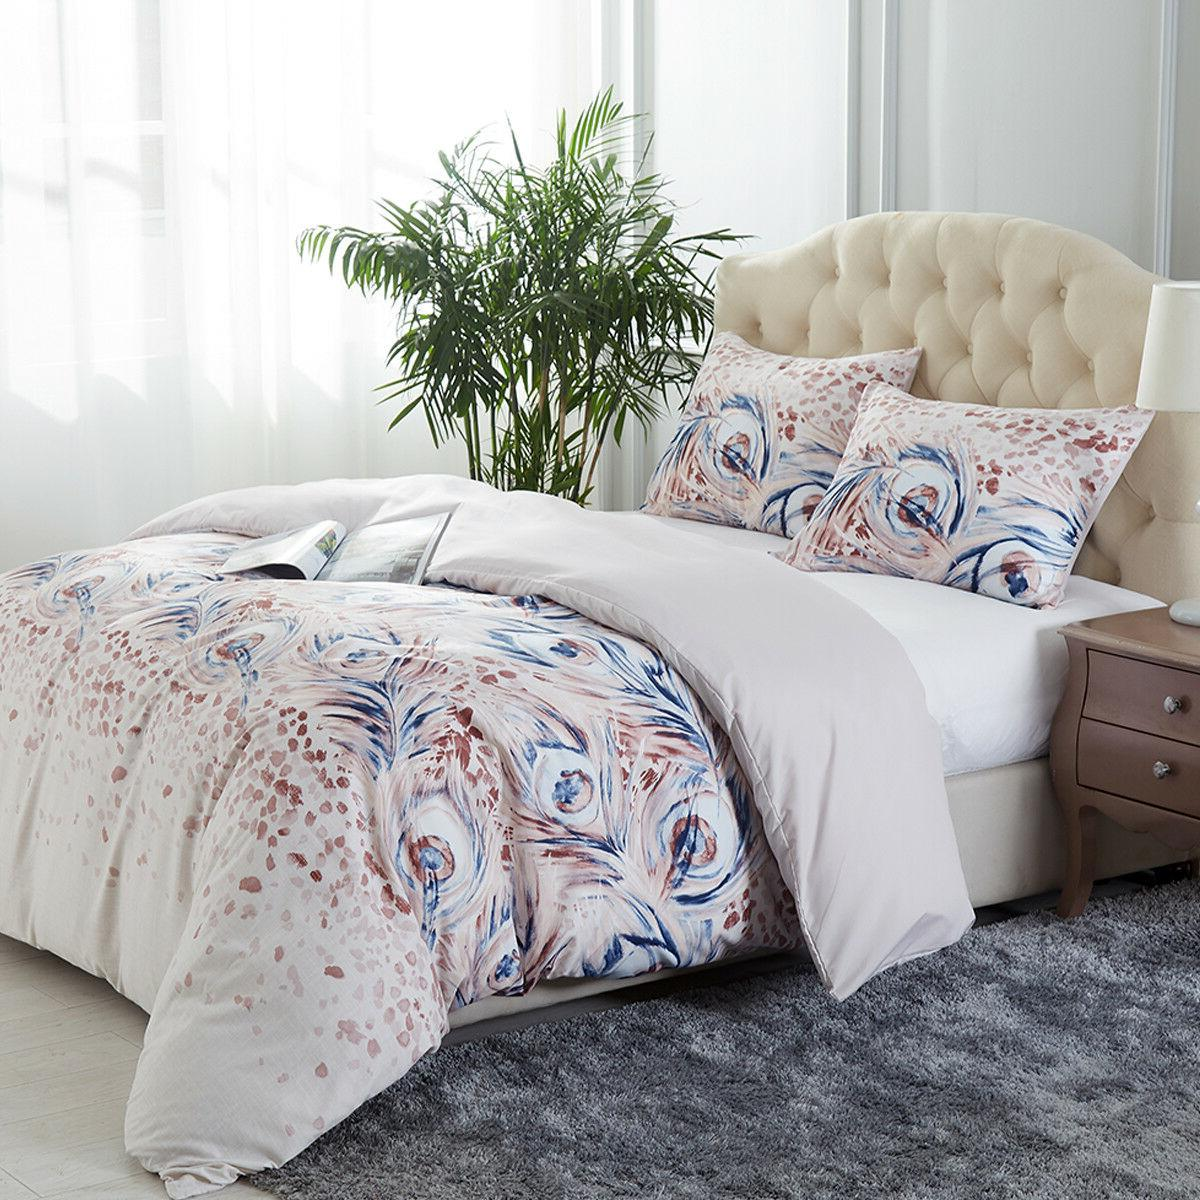 3 Duvet Cover Bed Cover Bedding